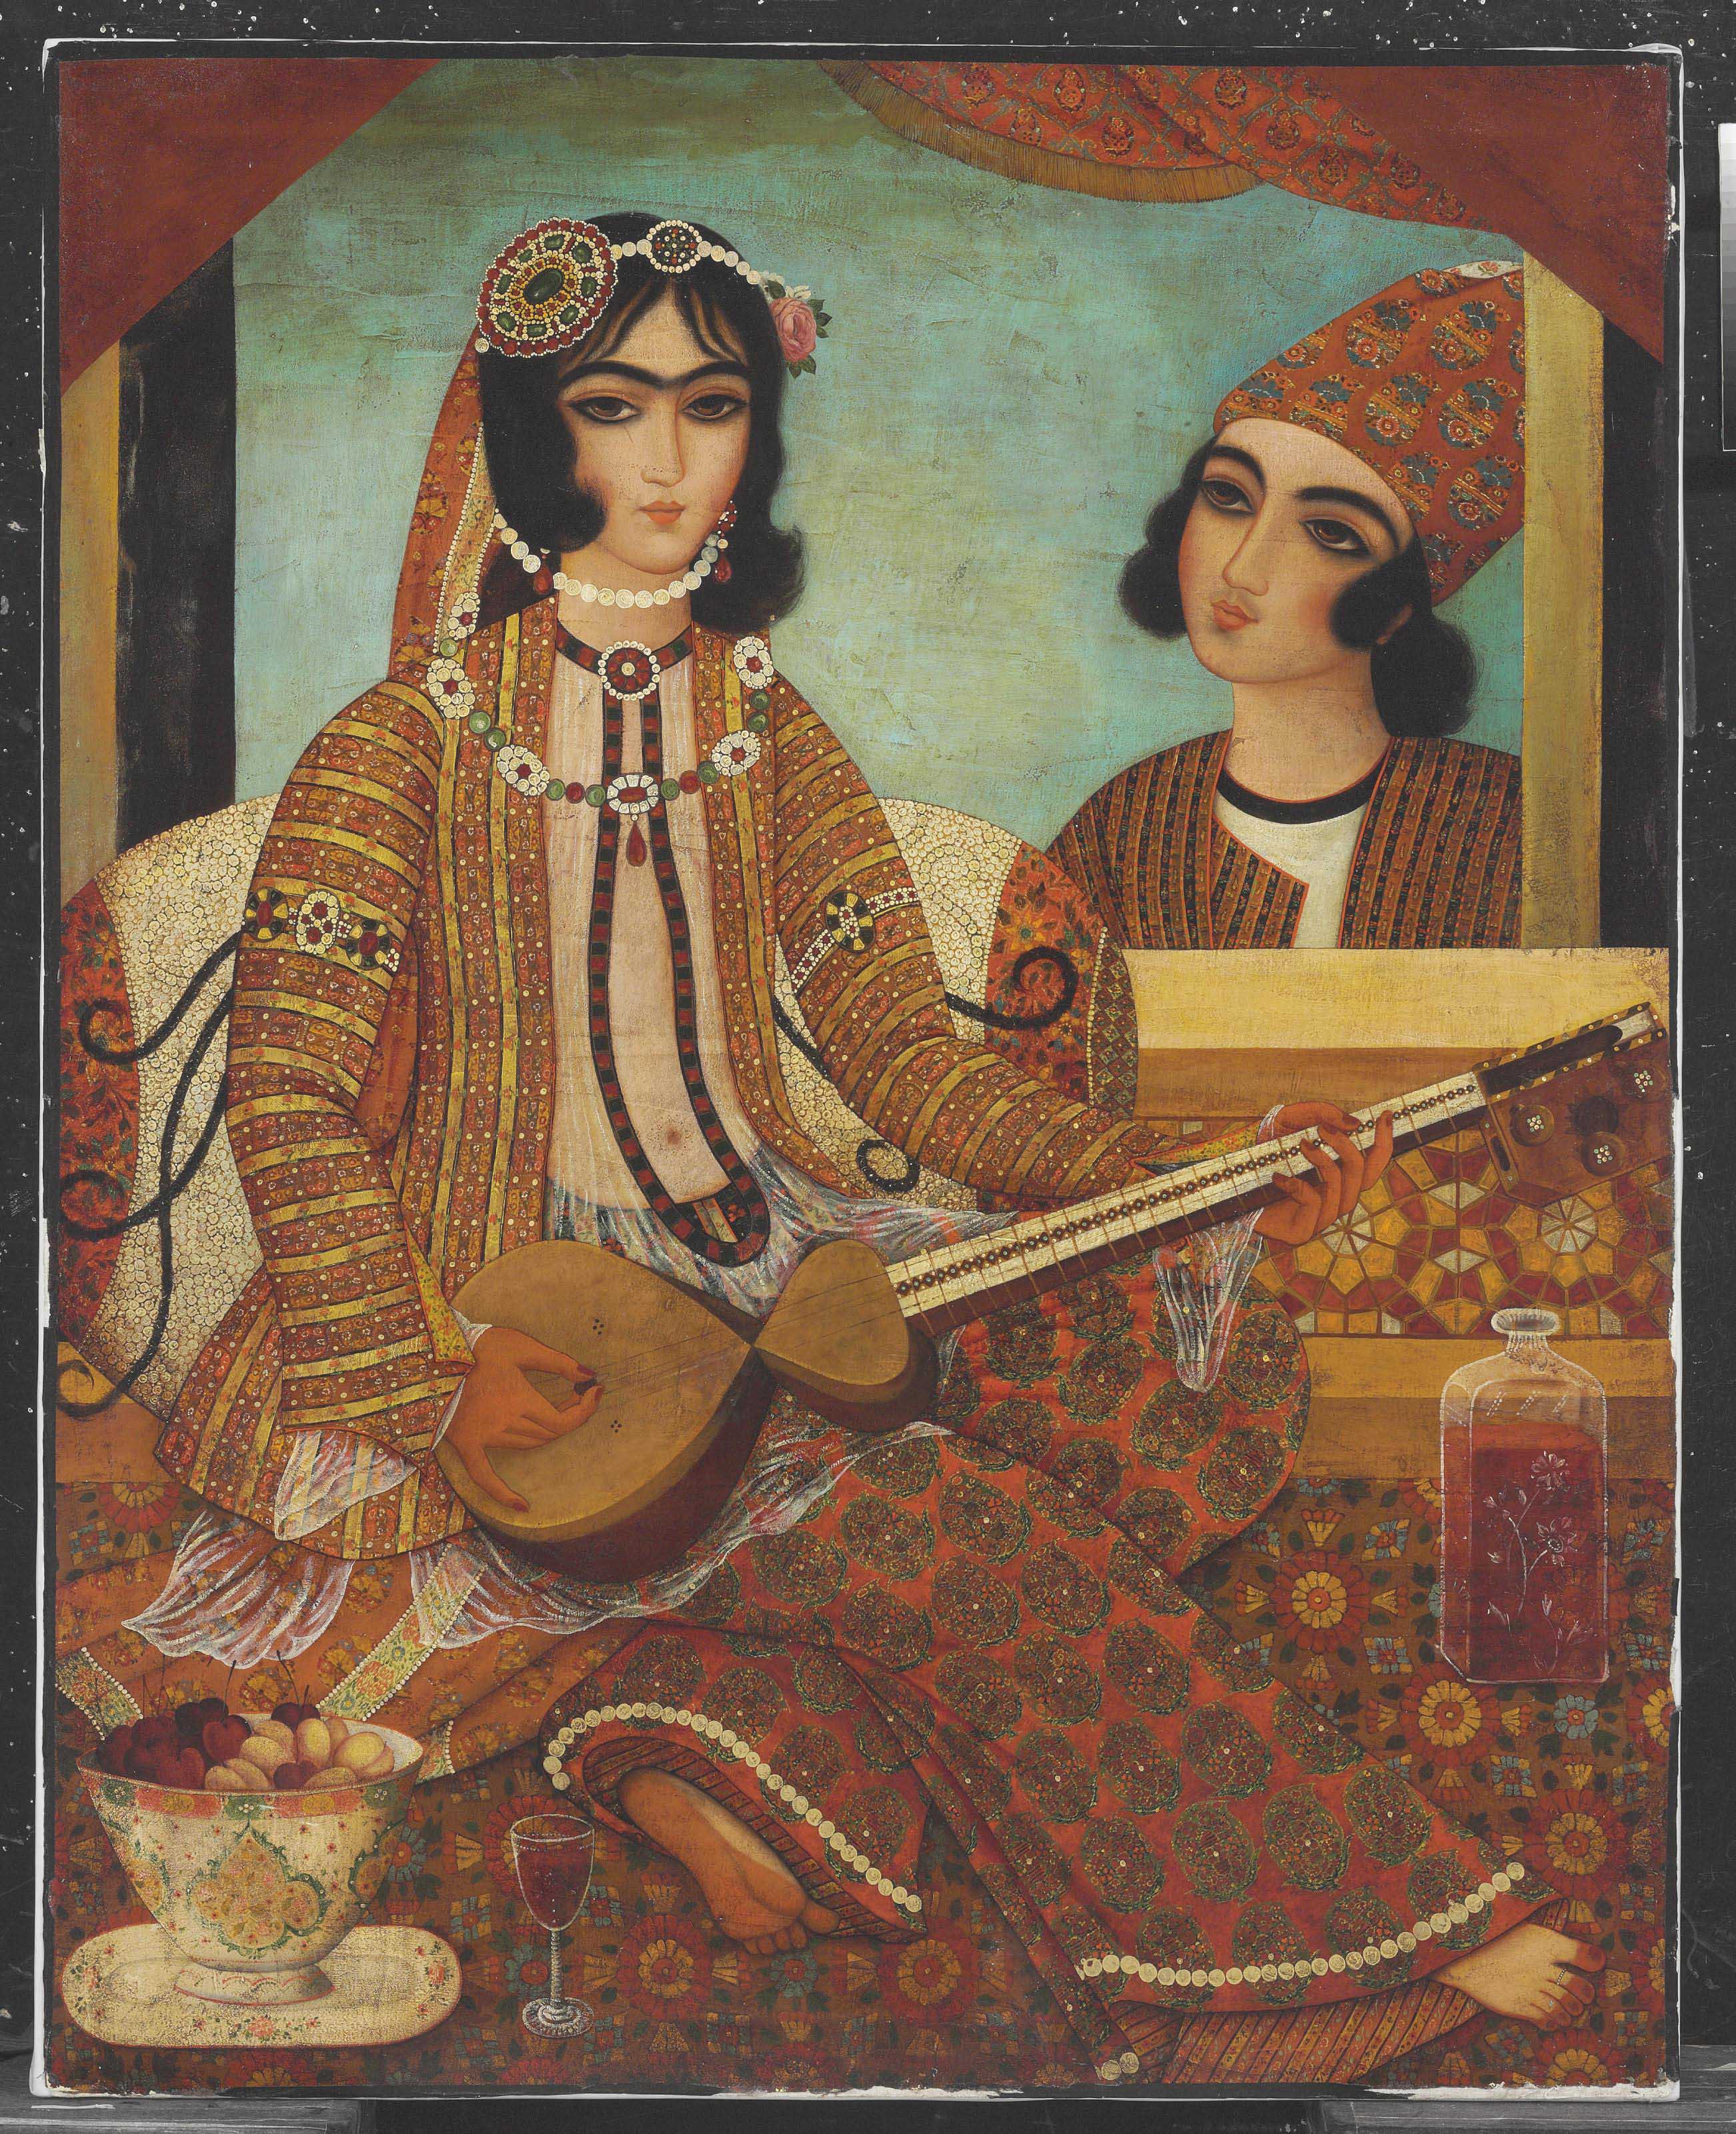 A LADY PLAYING A STRINGED INSTRUMENT | QAJAR IRAN, EARLY